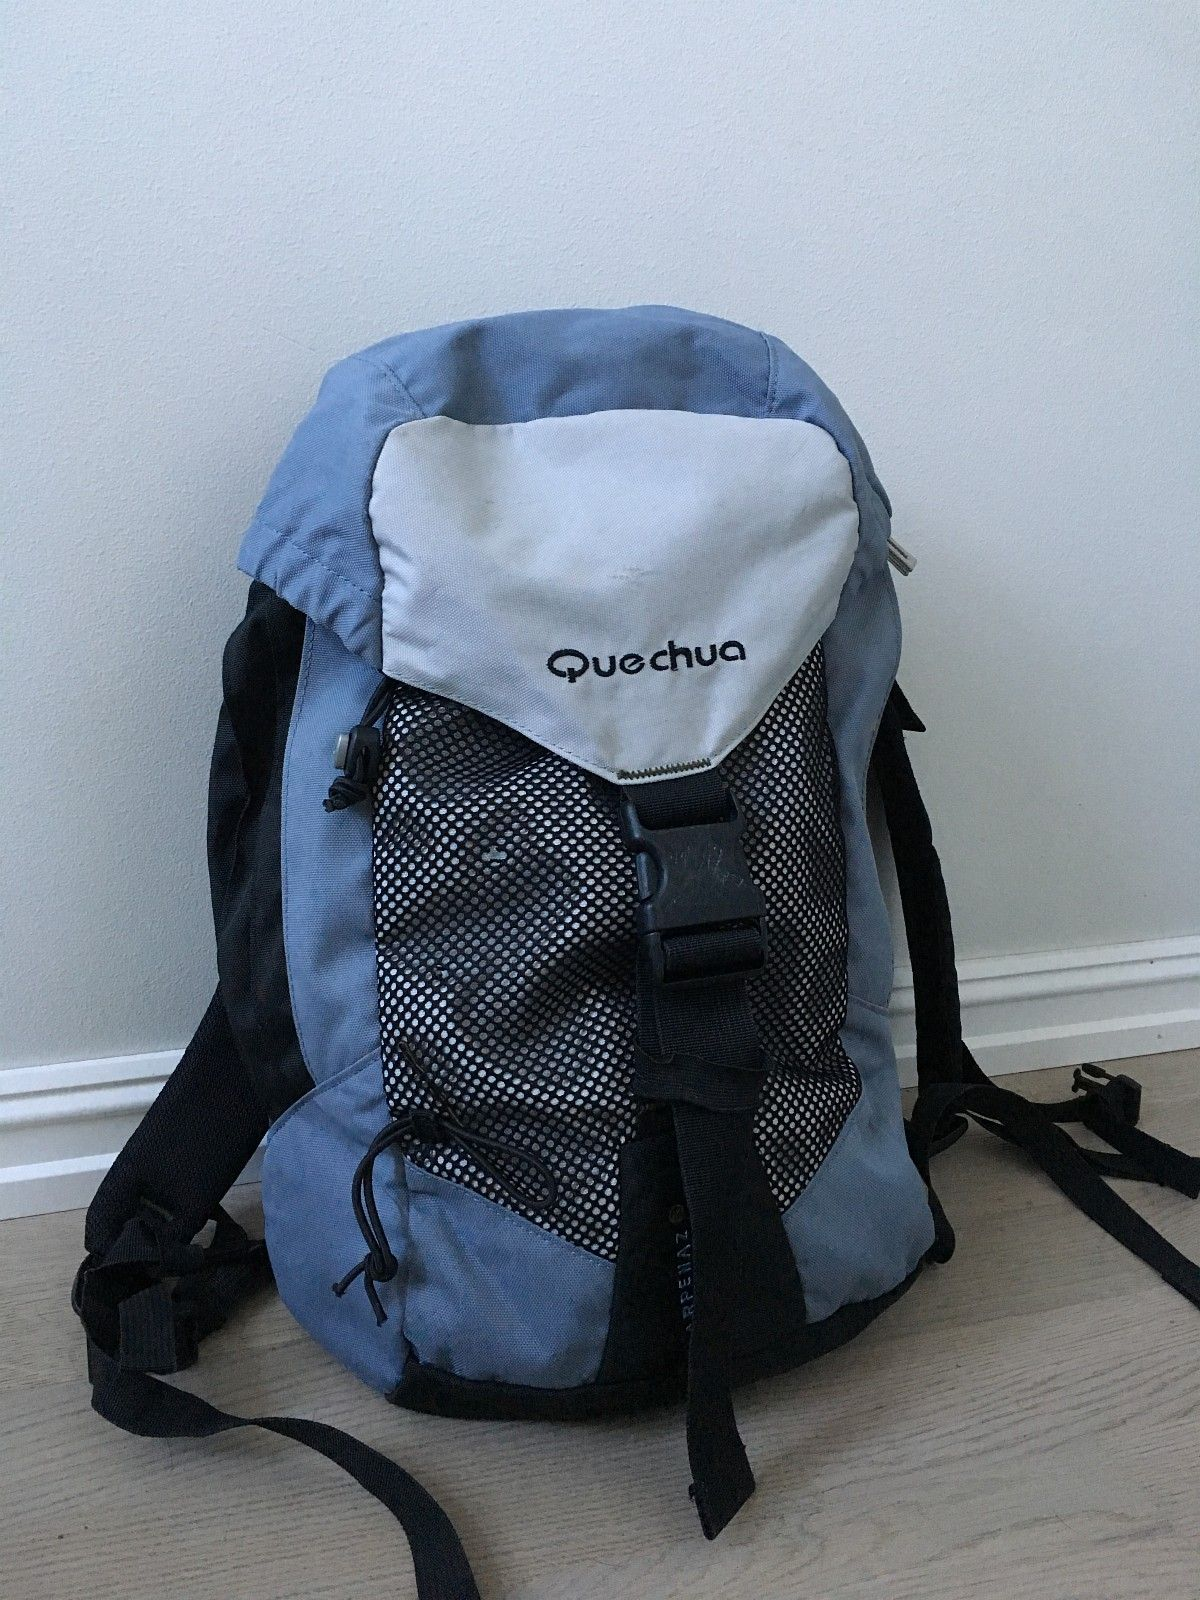 Ryggsekk Quechua 20L - Oslo  - Hiking backpack 20L  In good condition - Oslo